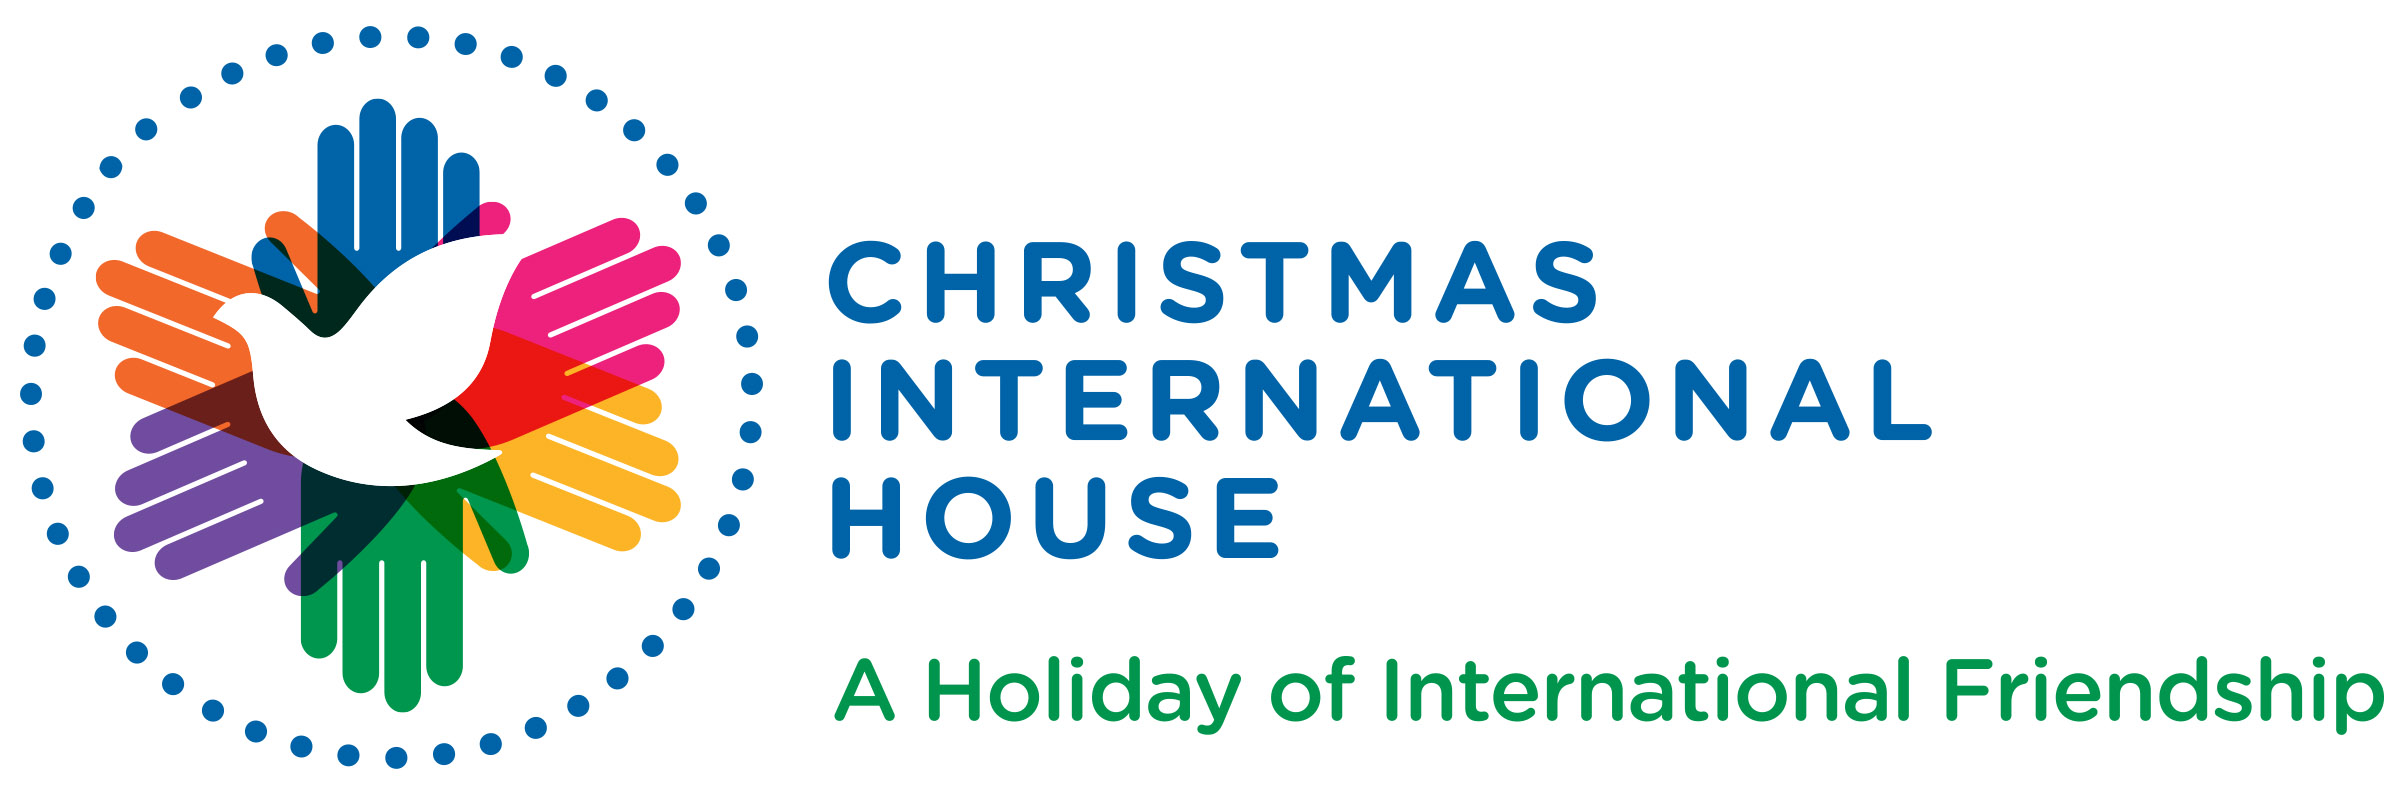 Christmas International House